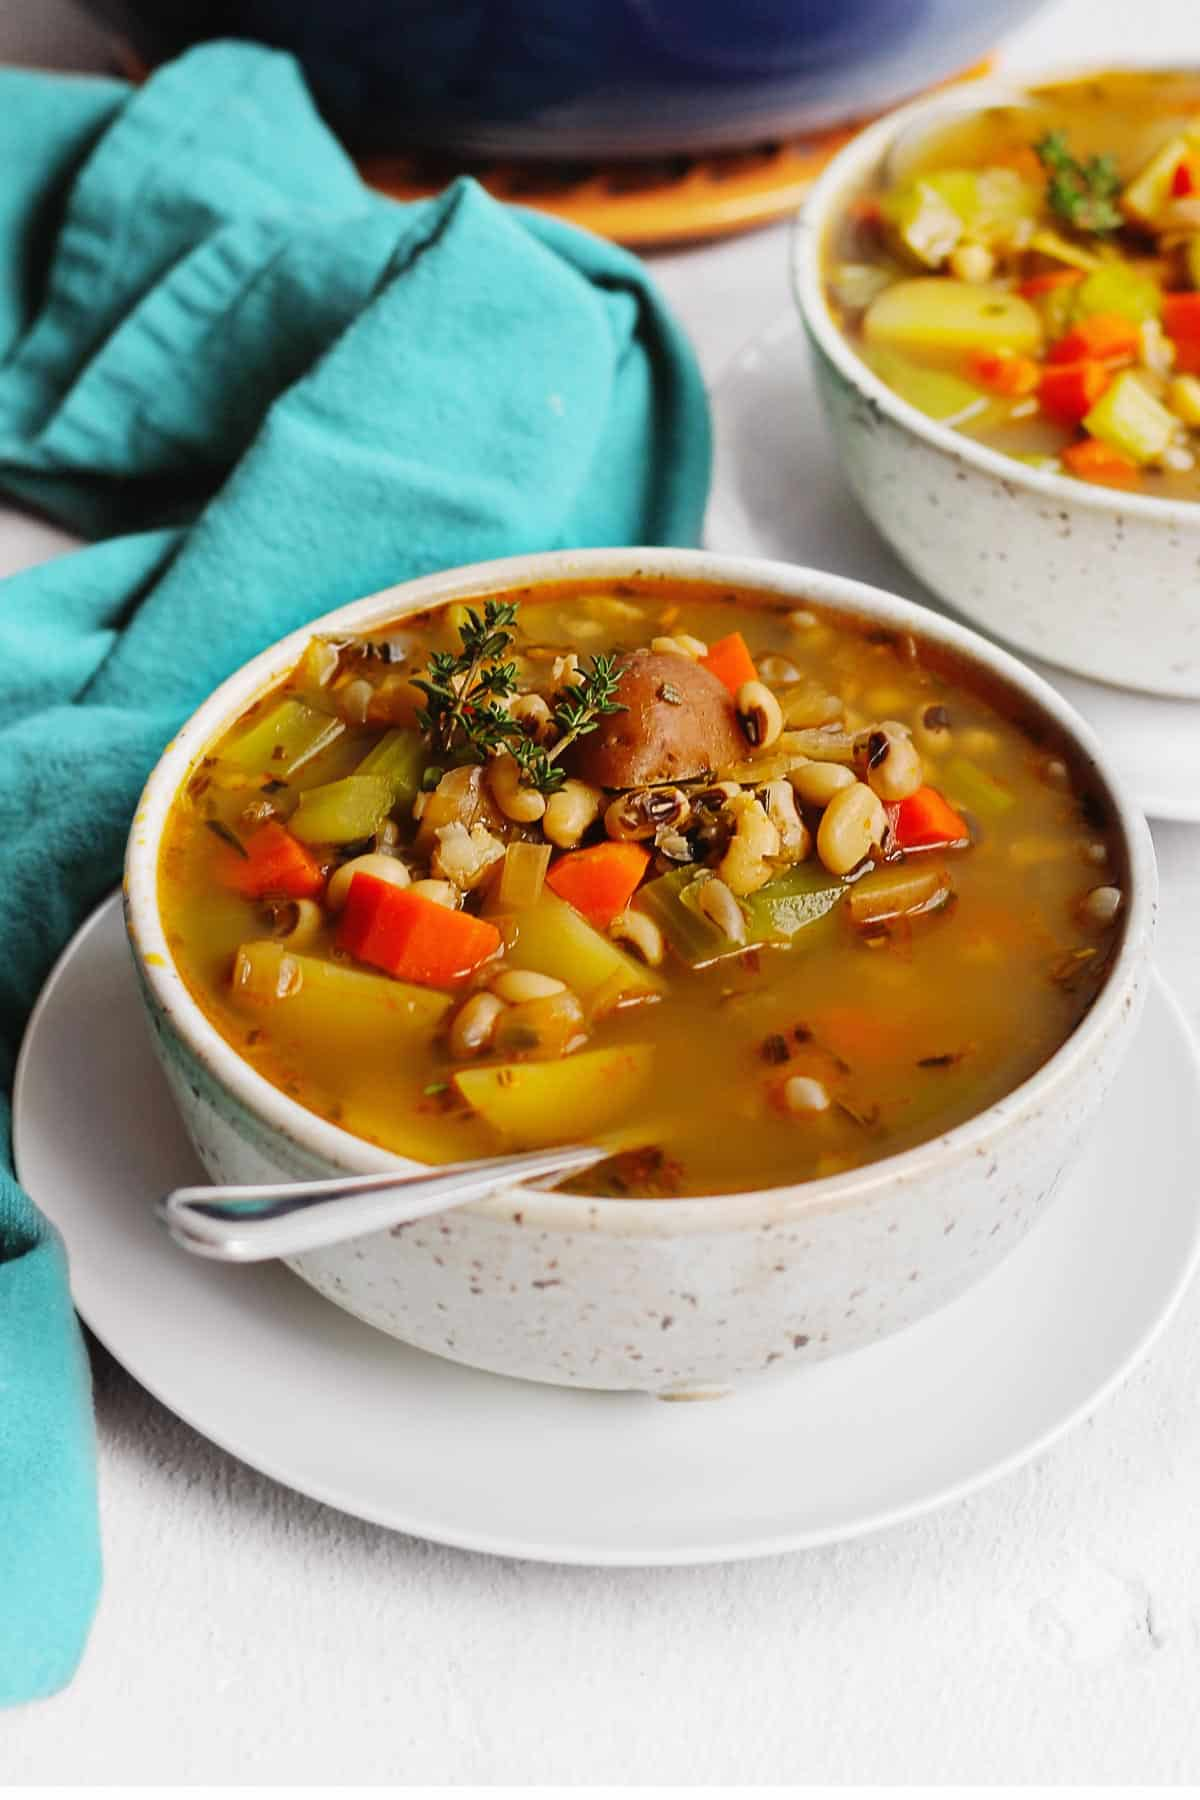 Vegan black eyed pea soup with a spoon